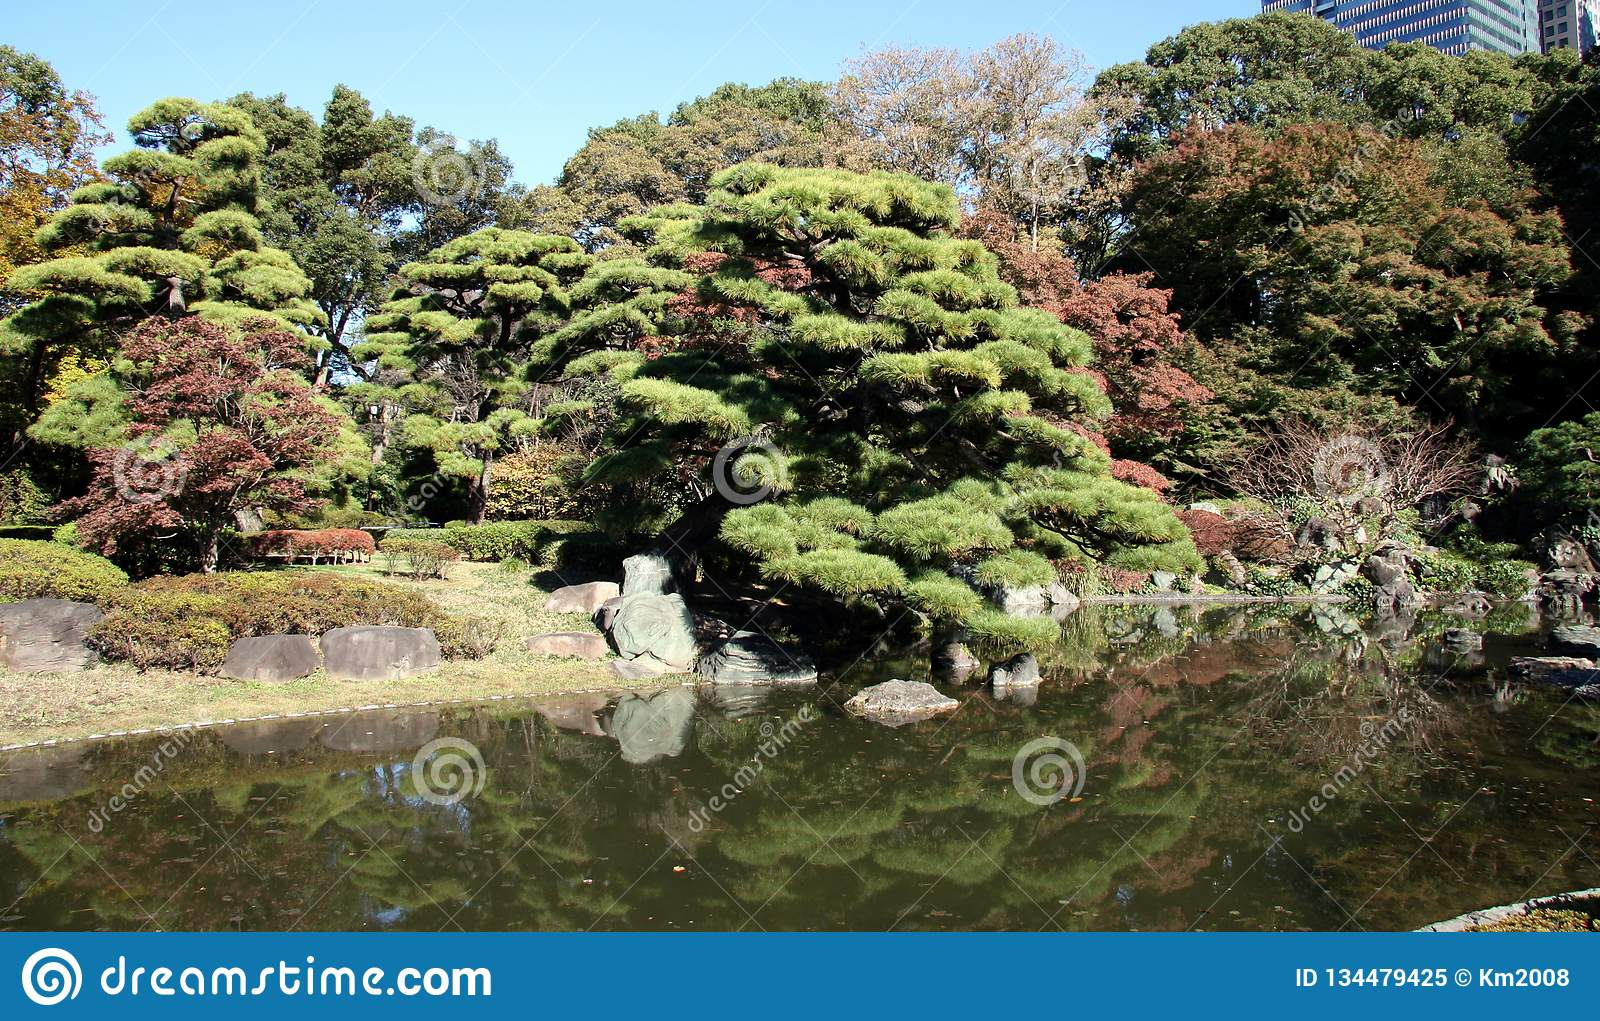 East Gardens Of Imperial Palace Tokyo Japan Stock Image Image Of Palace Garden 134479425